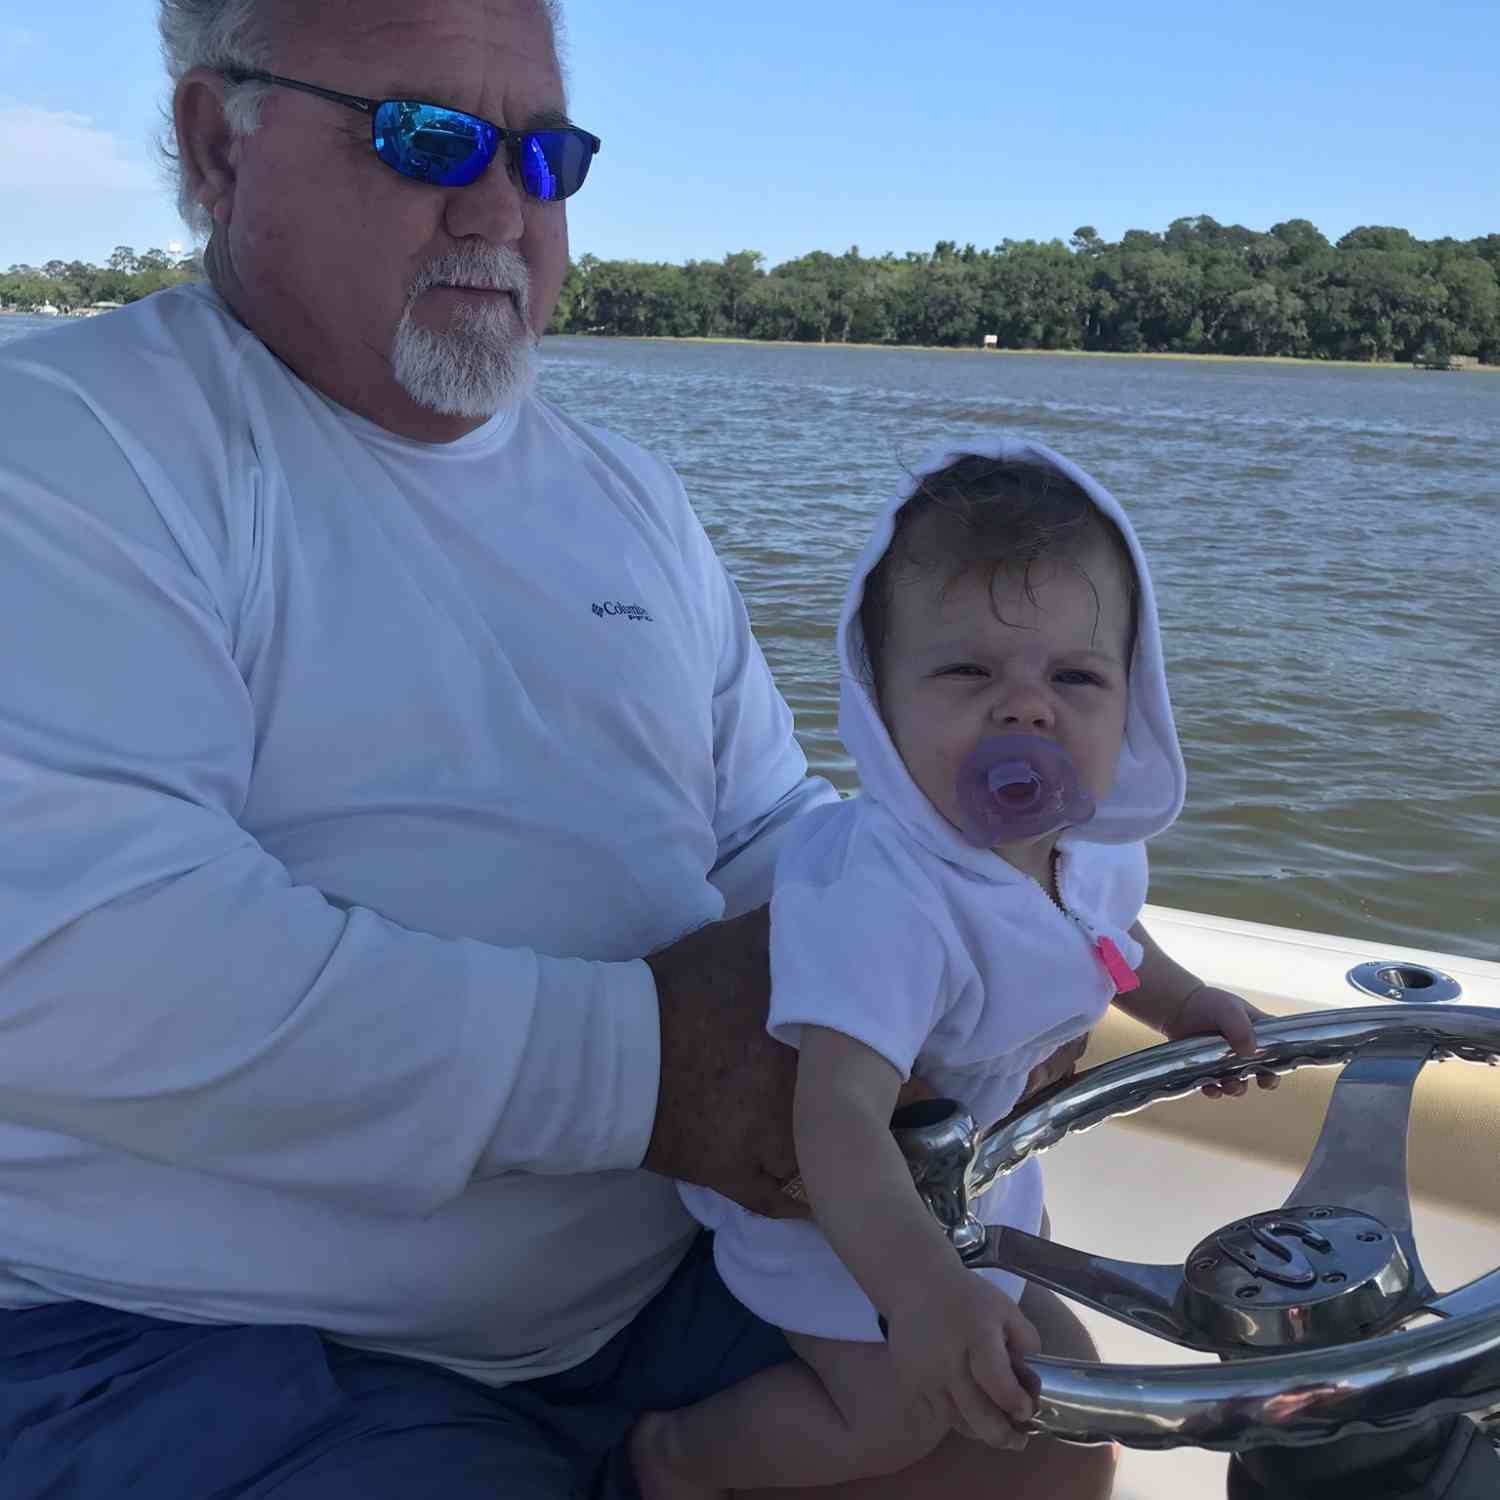 Title: Grand baby weekend. - On board their Sportsman Heritage 231 Center Console - Location: Wilmington River, Savannah, Ga.. Participating in the Photo Contest #SportsmanAugust2020